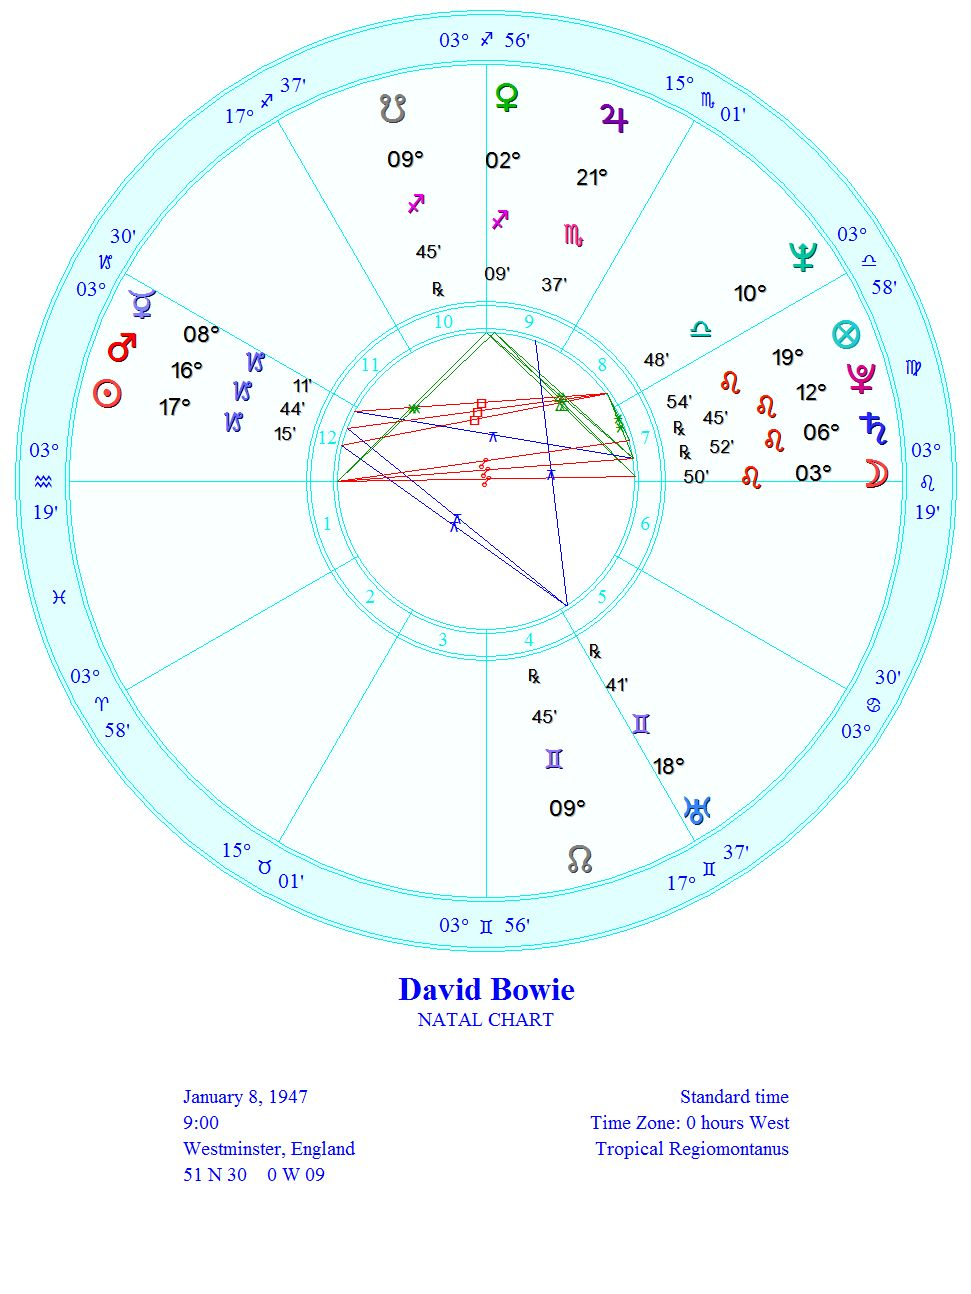 Astrology and everything else David Bowie's illness